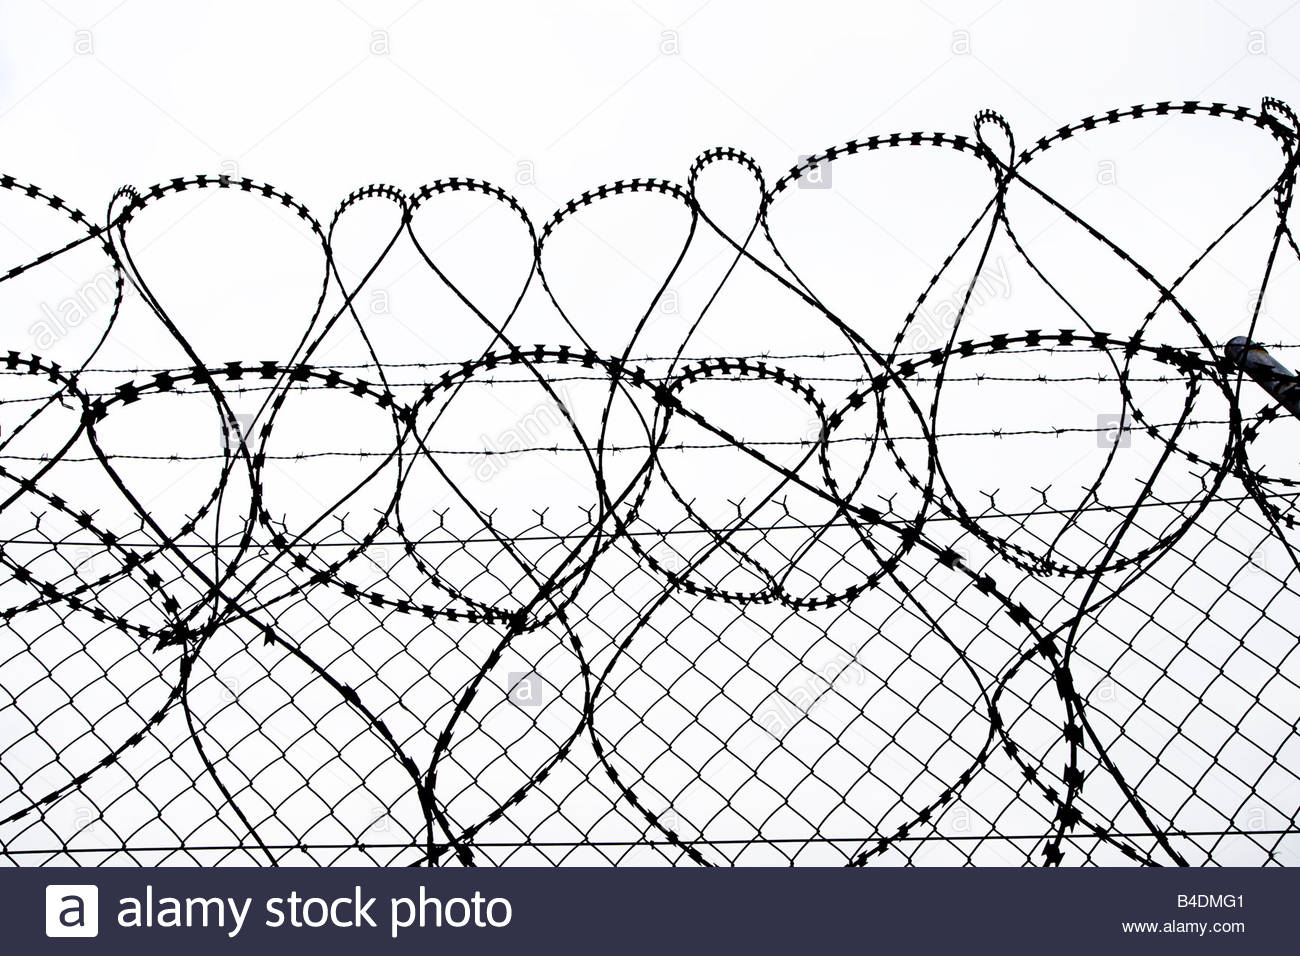 1300x956 Razor Wire And Fence Silhouette Uk Stock Photo 19970497